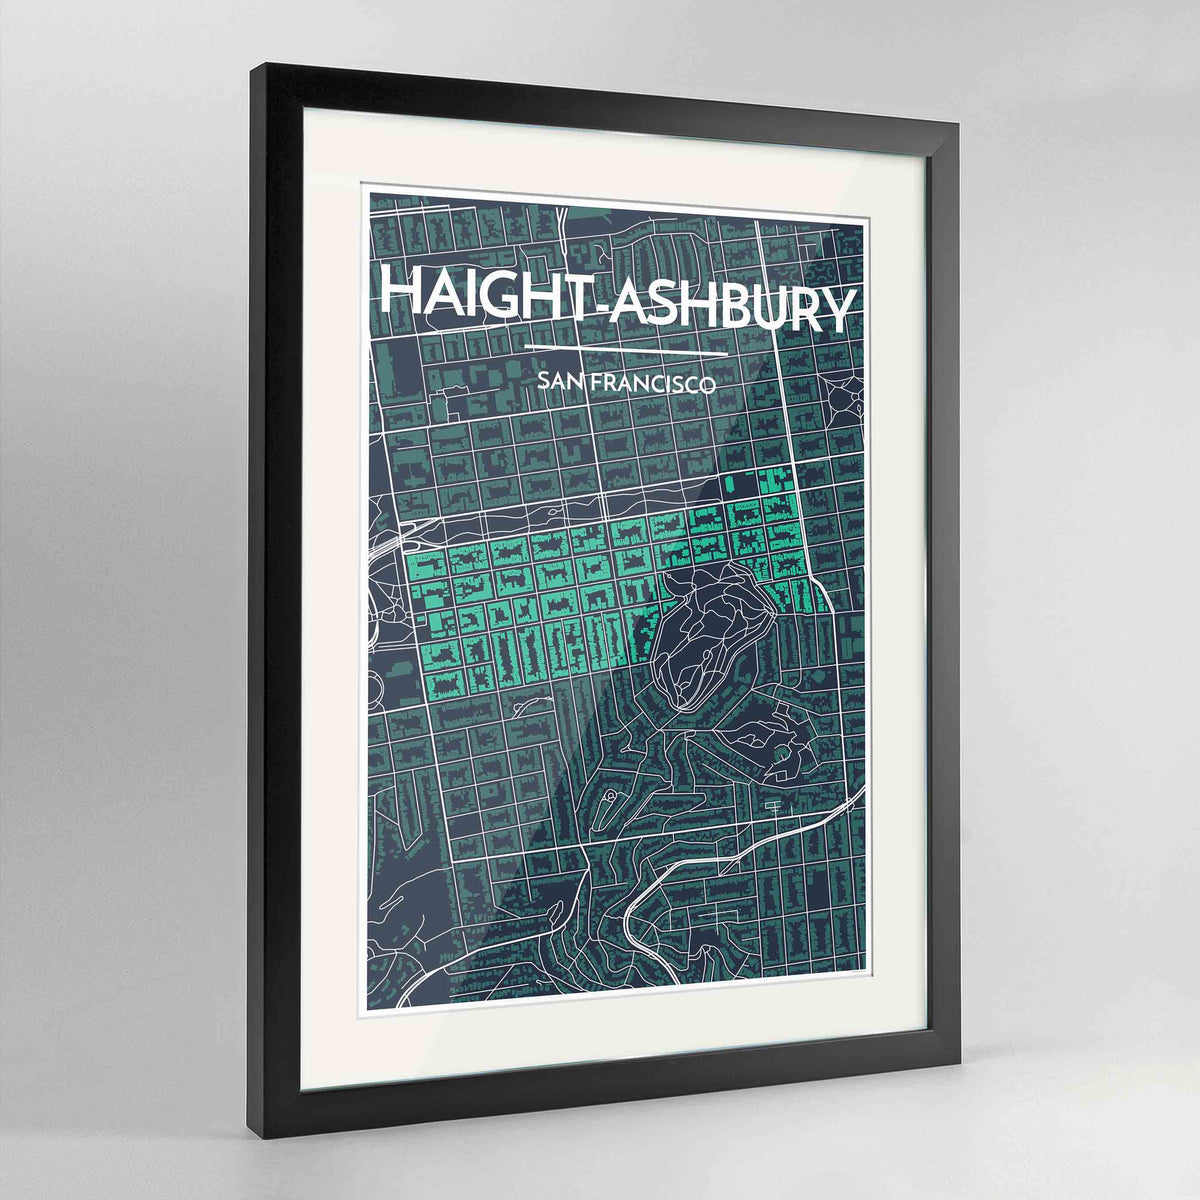 "Framed Haight-Ashbury San Francisco Map Art Print 24x36"" Contemporary Black frame Point Two Design Group"